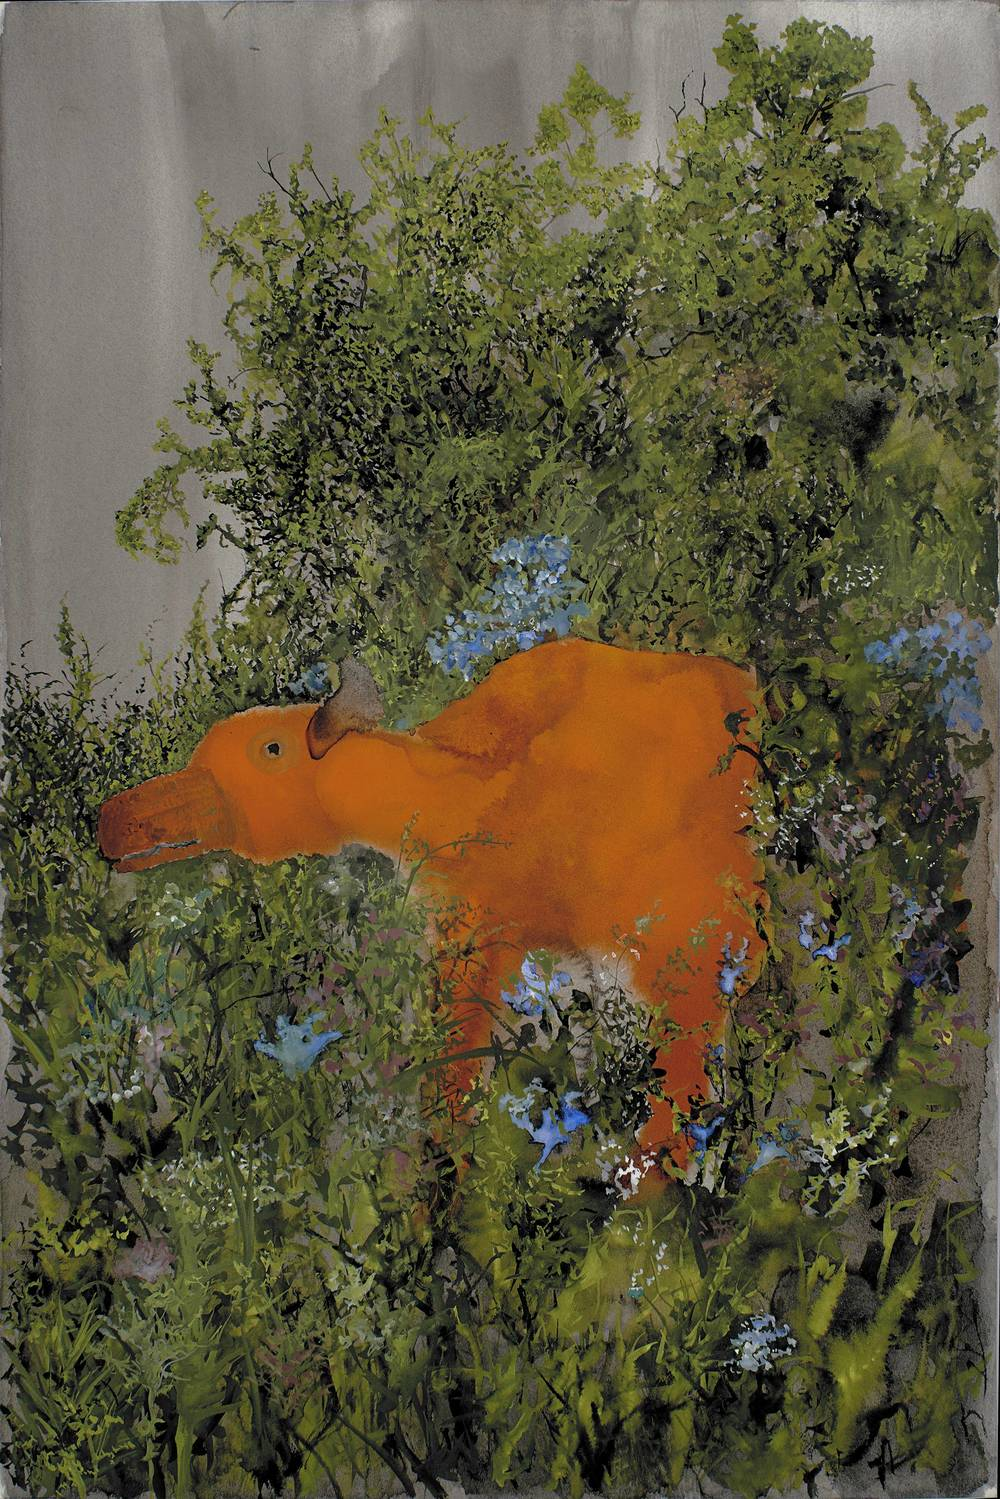 John Lurie    Contrary to popular belief, I mind walking through thorn bushes, I go there because you aren't  , 2013 Watercolor on paper 18 x 12 inches  /  45.7 x 30.5 cm  /  JLur 7